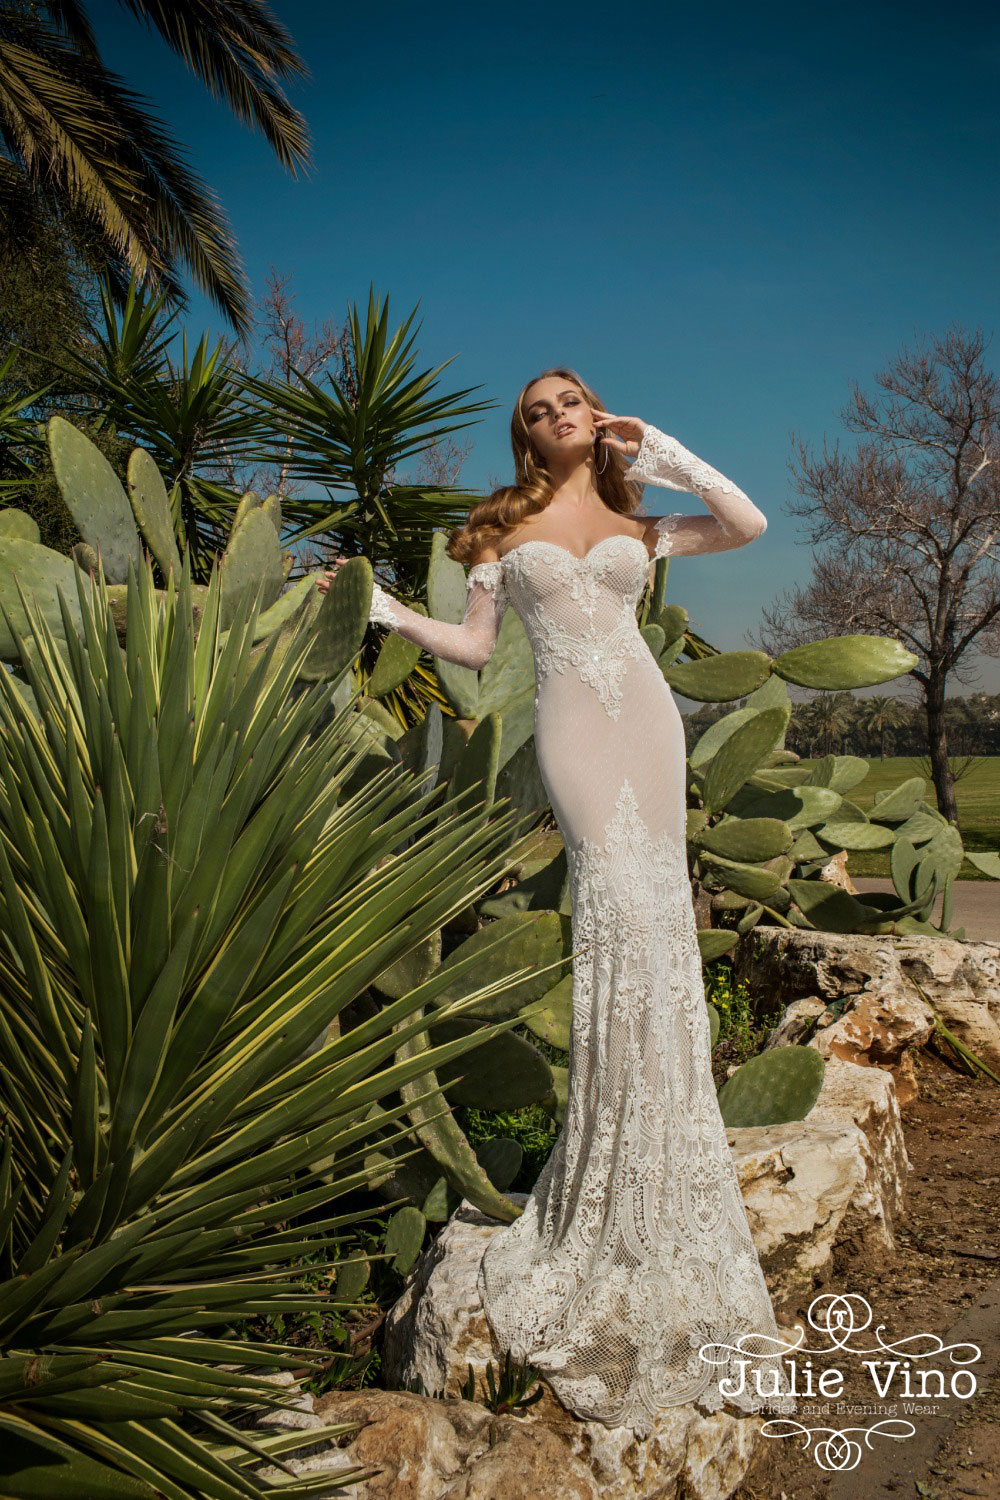 Julie Vino SS 2015 Collection 3